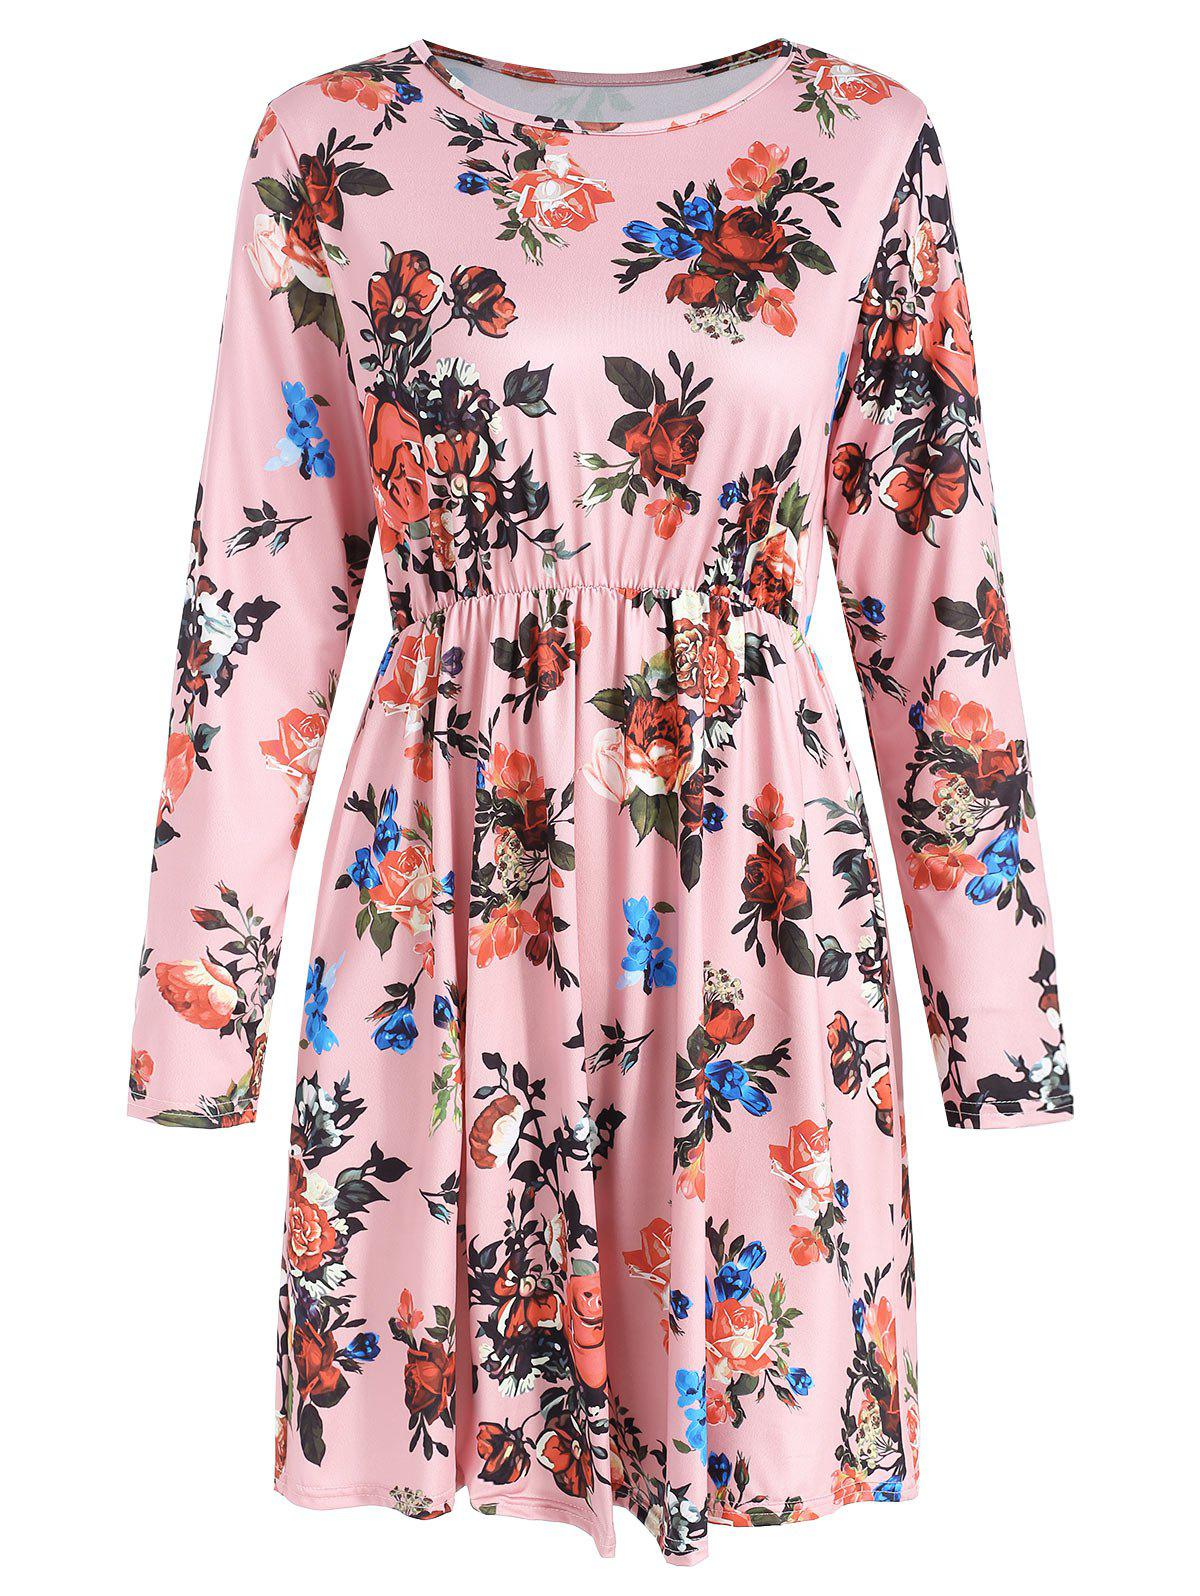 Long Sleeve Floral Print High Rise Dress - LIGHT PINK 2XL